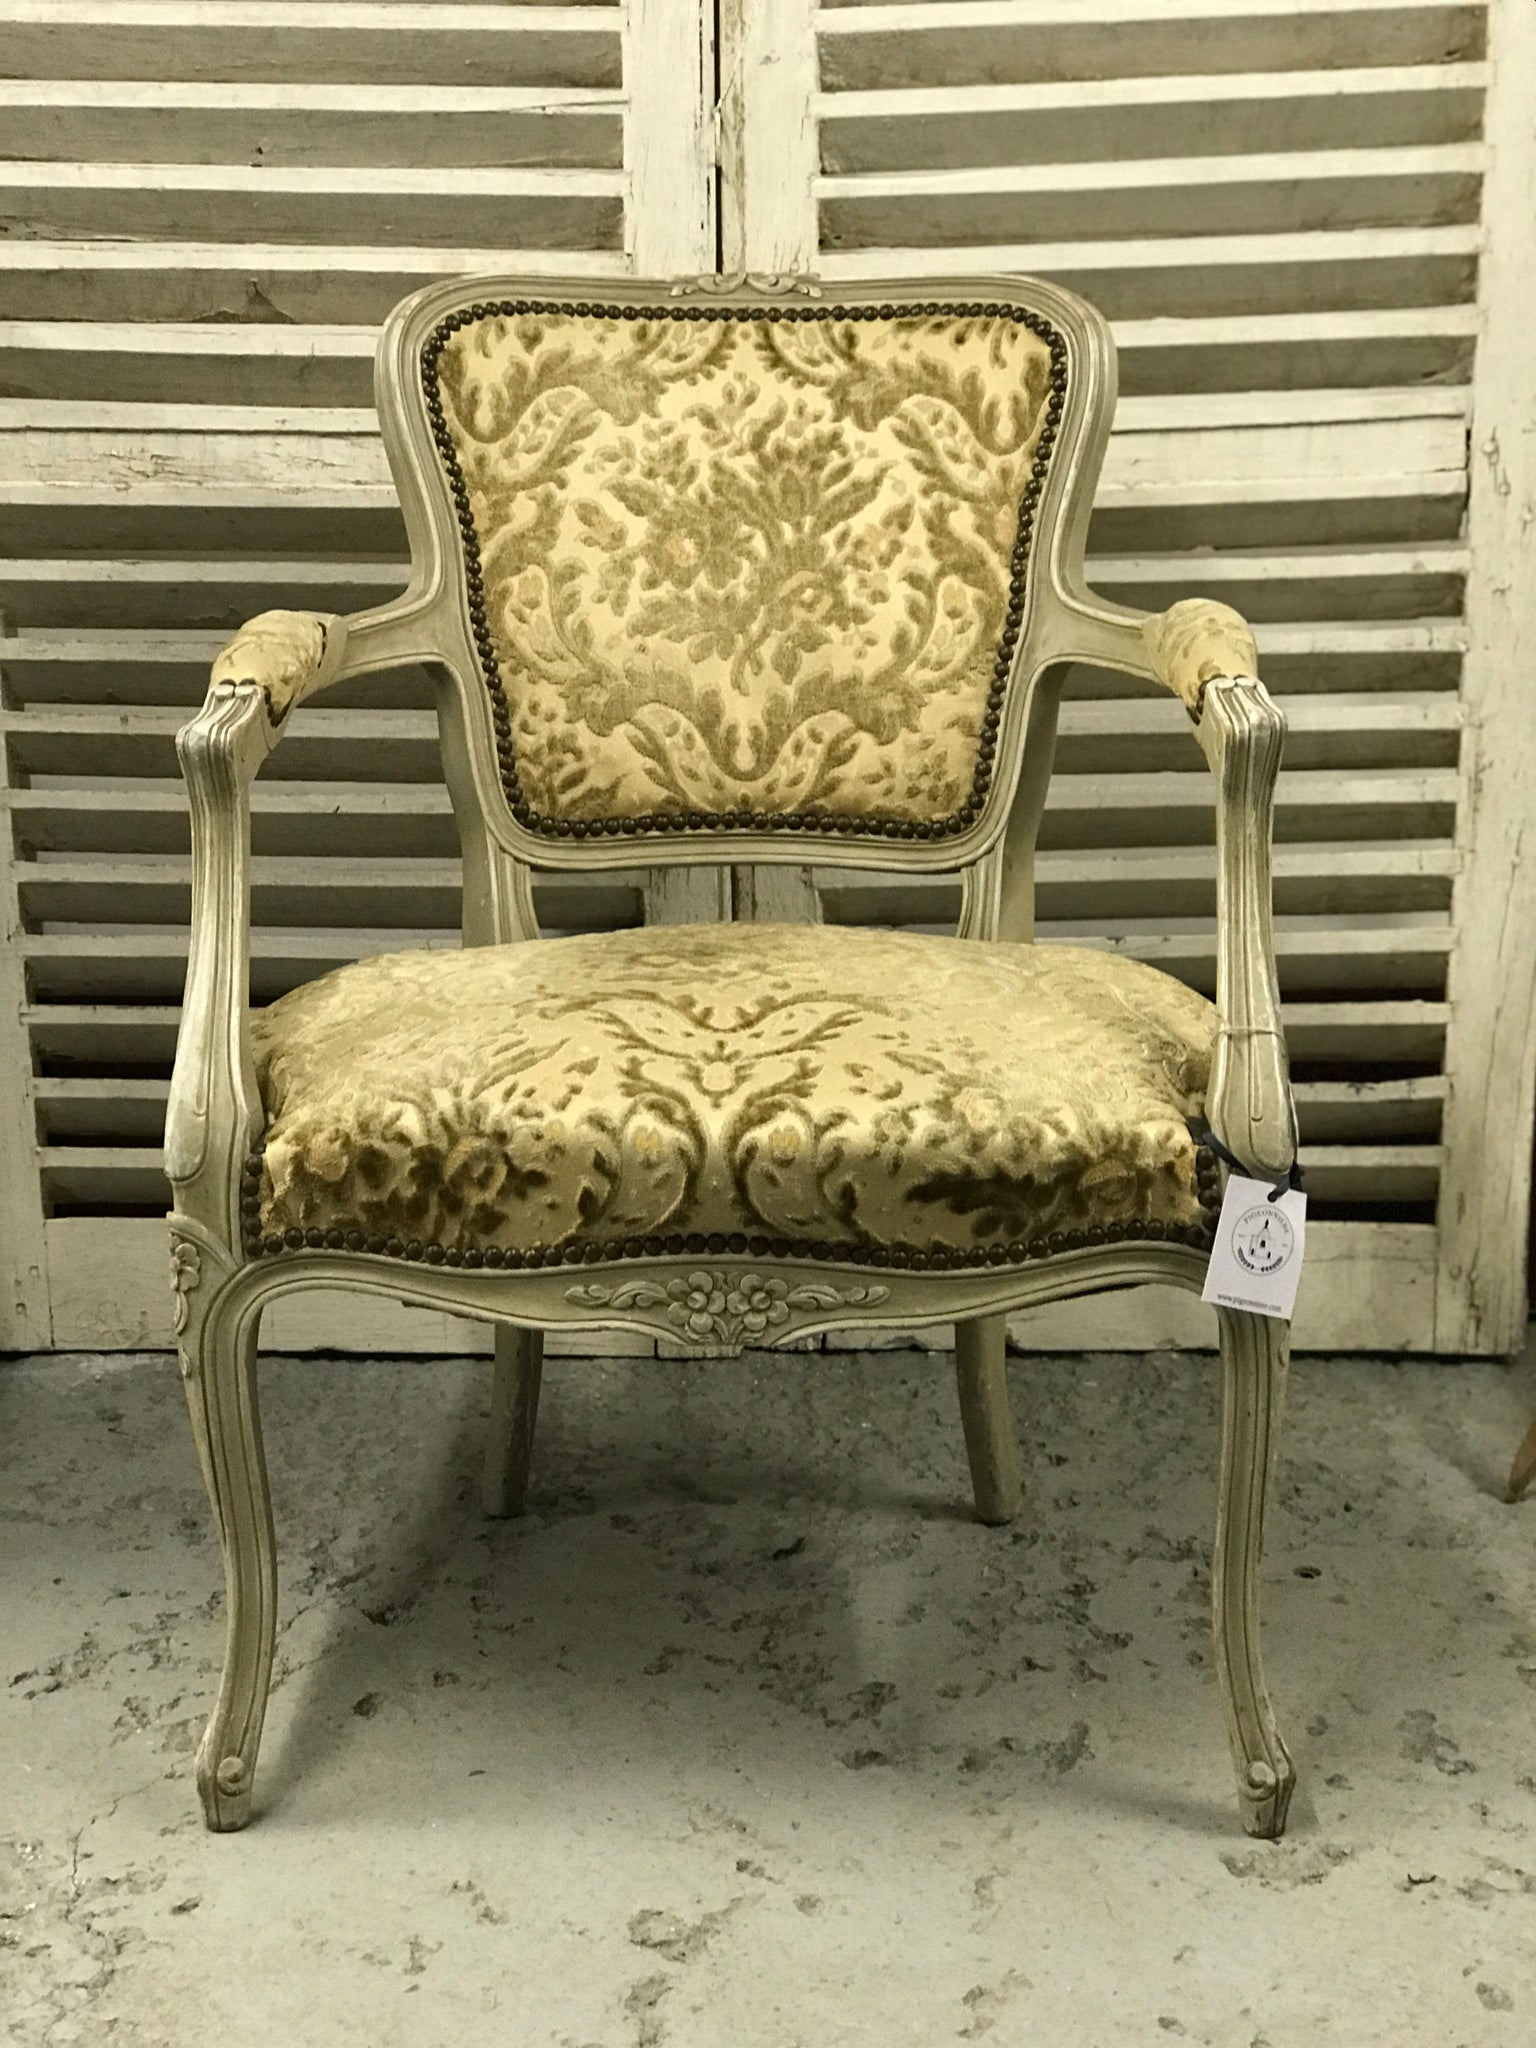 Early 20th century French salon chair with original upholstery.